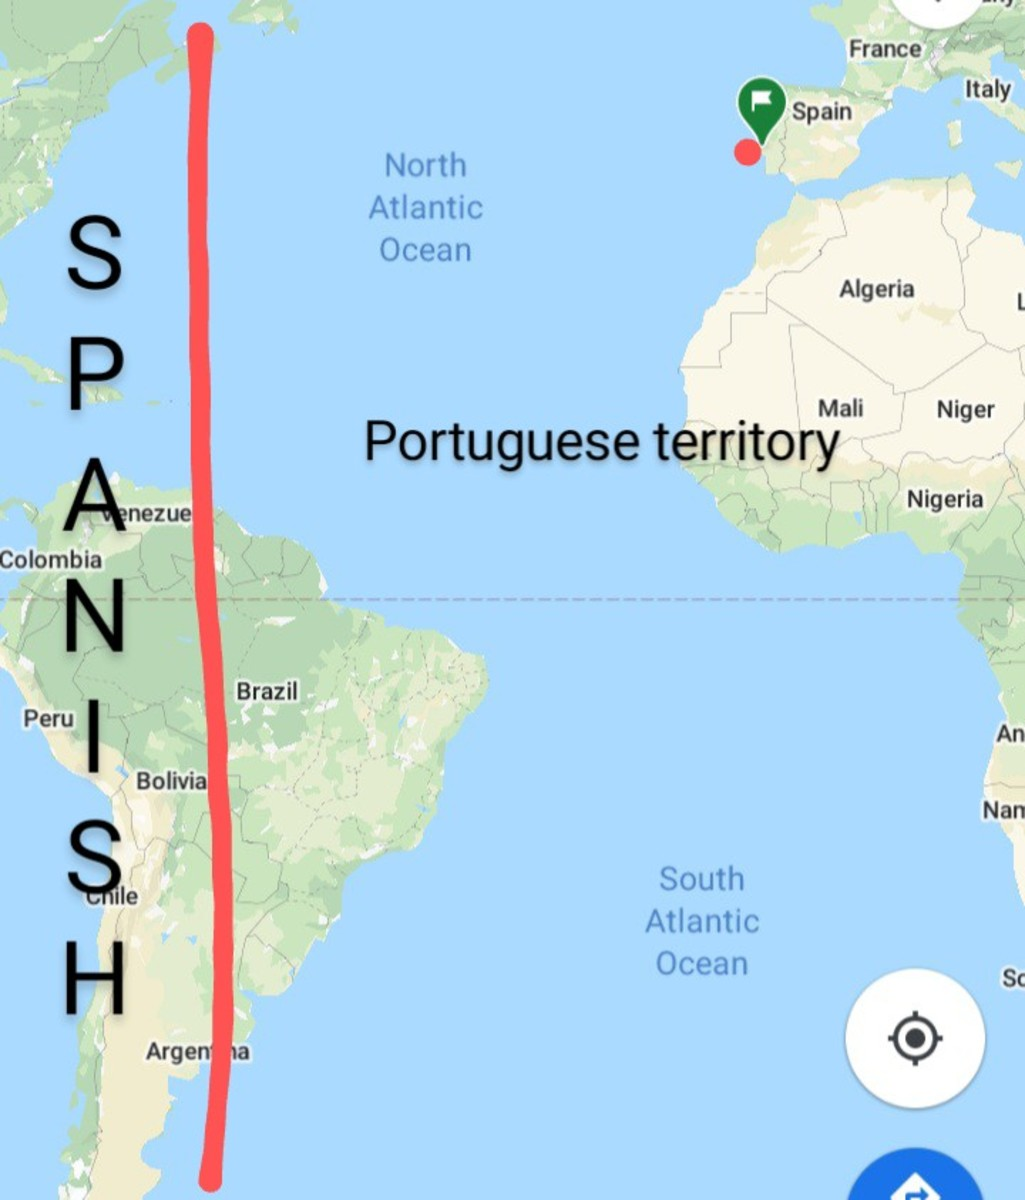 Division between Spanish and Portuguese territories after signing the treaty of Tordesillas.